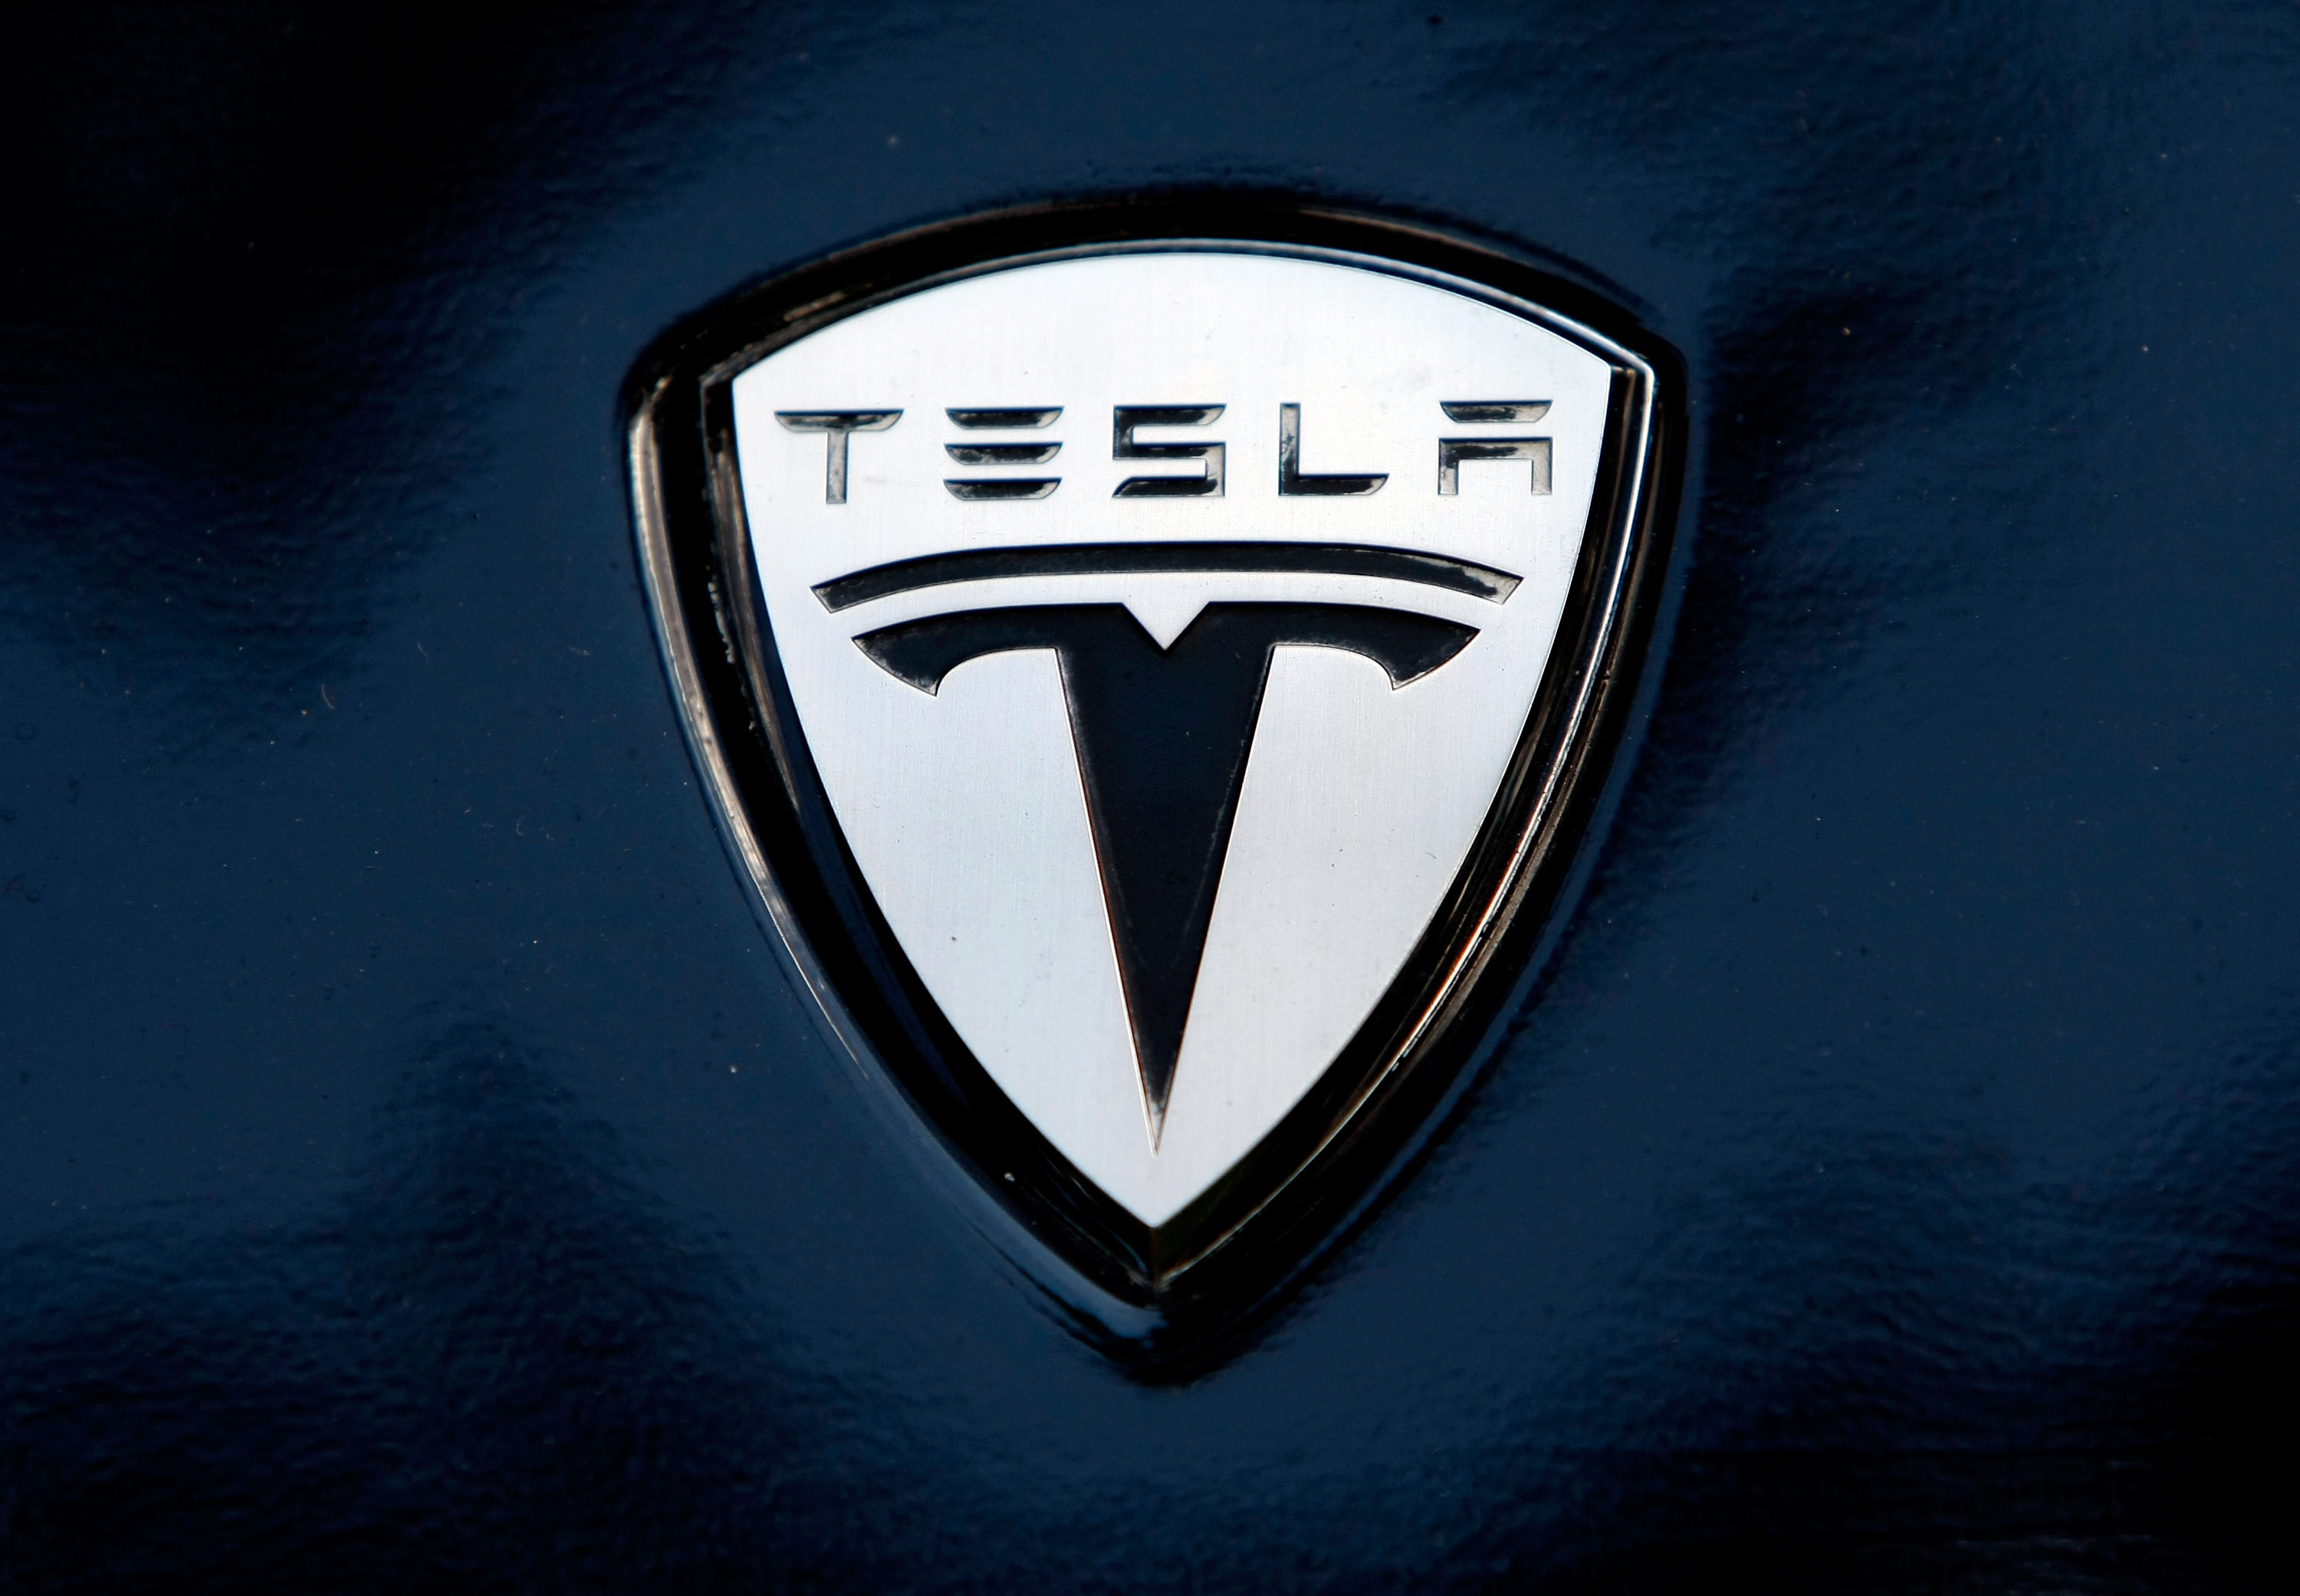 The Tesla electric car logo is shown during a display of alternative energy vehicles on Capitol Hill June 12, 2008 in Washington, DC.